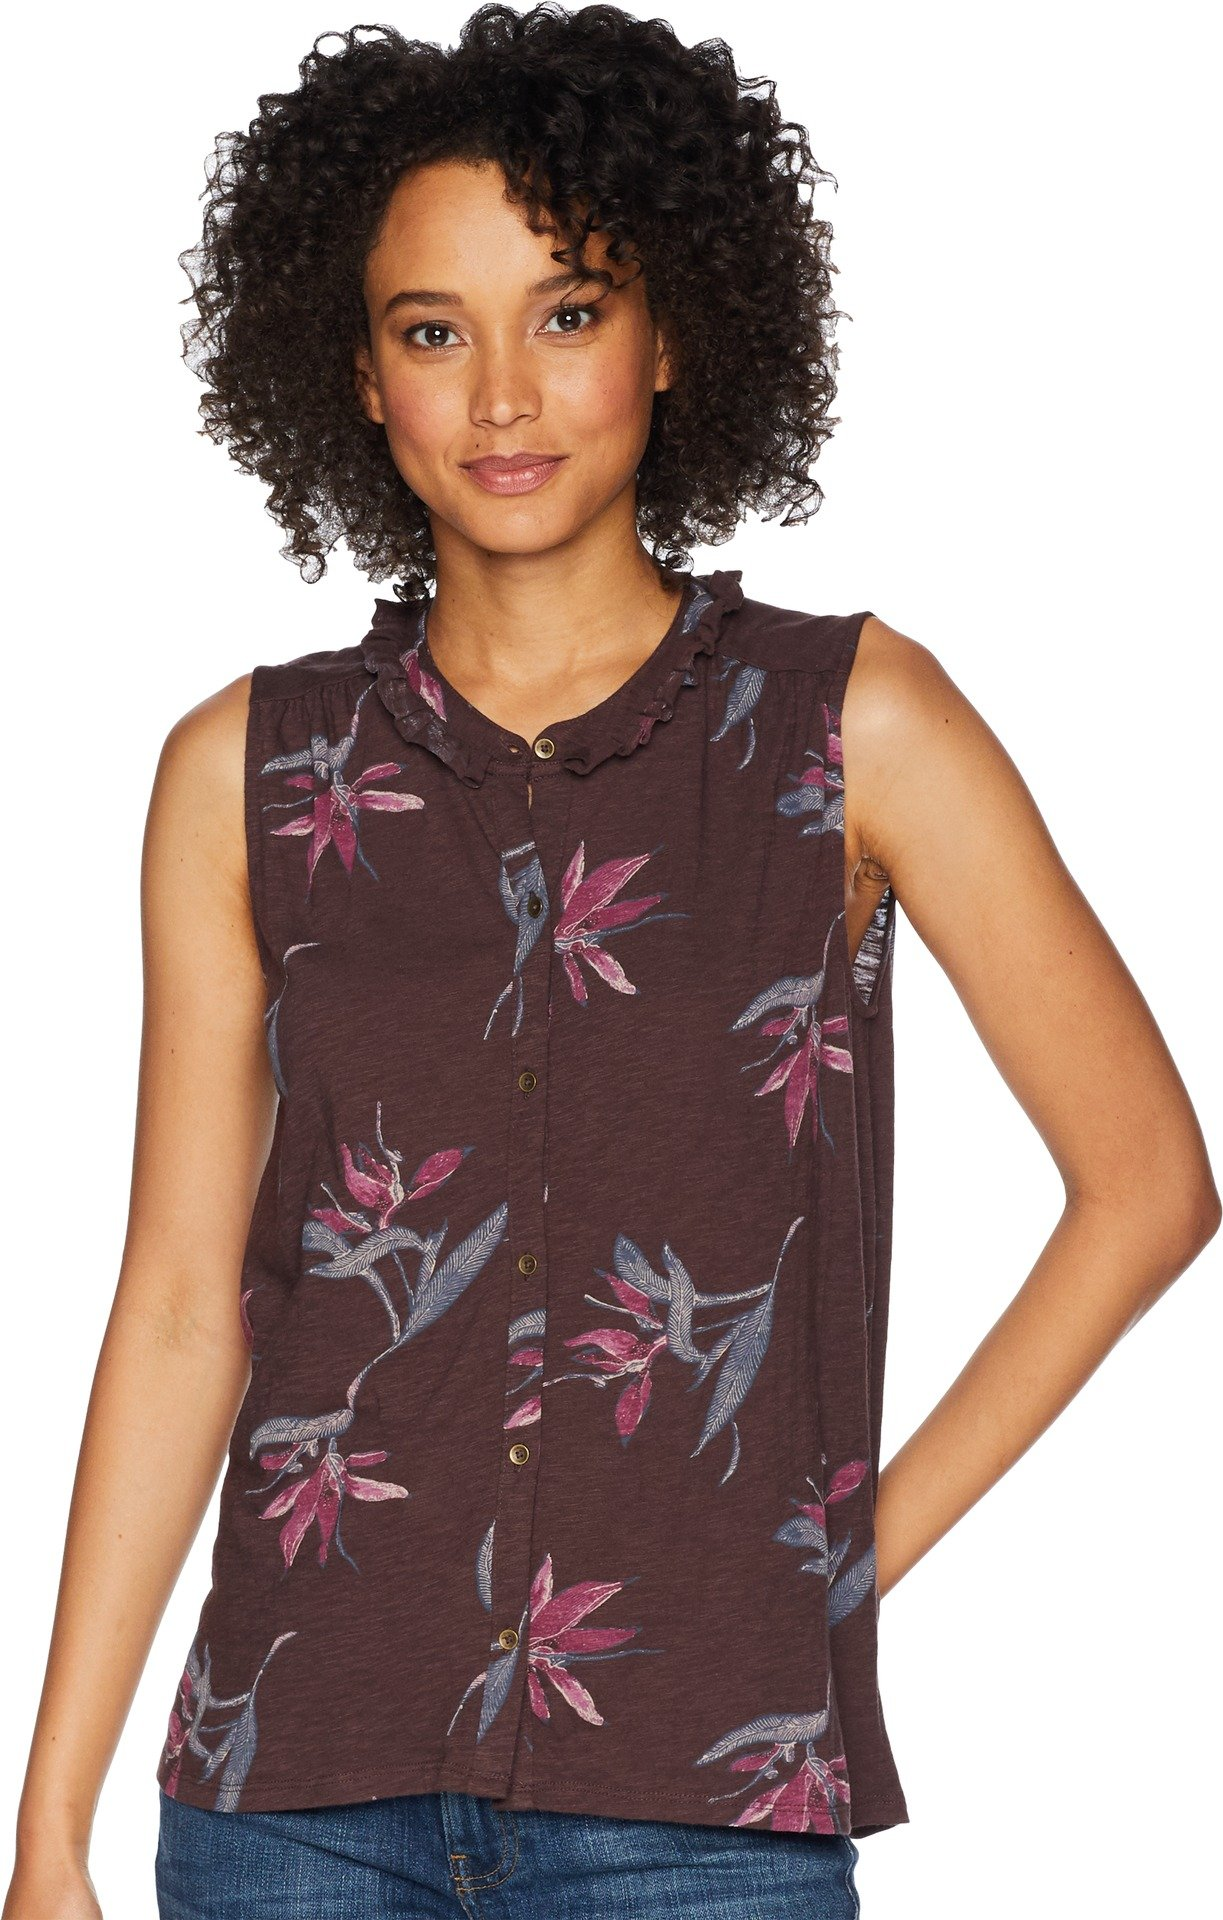 Lucky Brand Women's Floral Printed Tank Top, Multi, XL